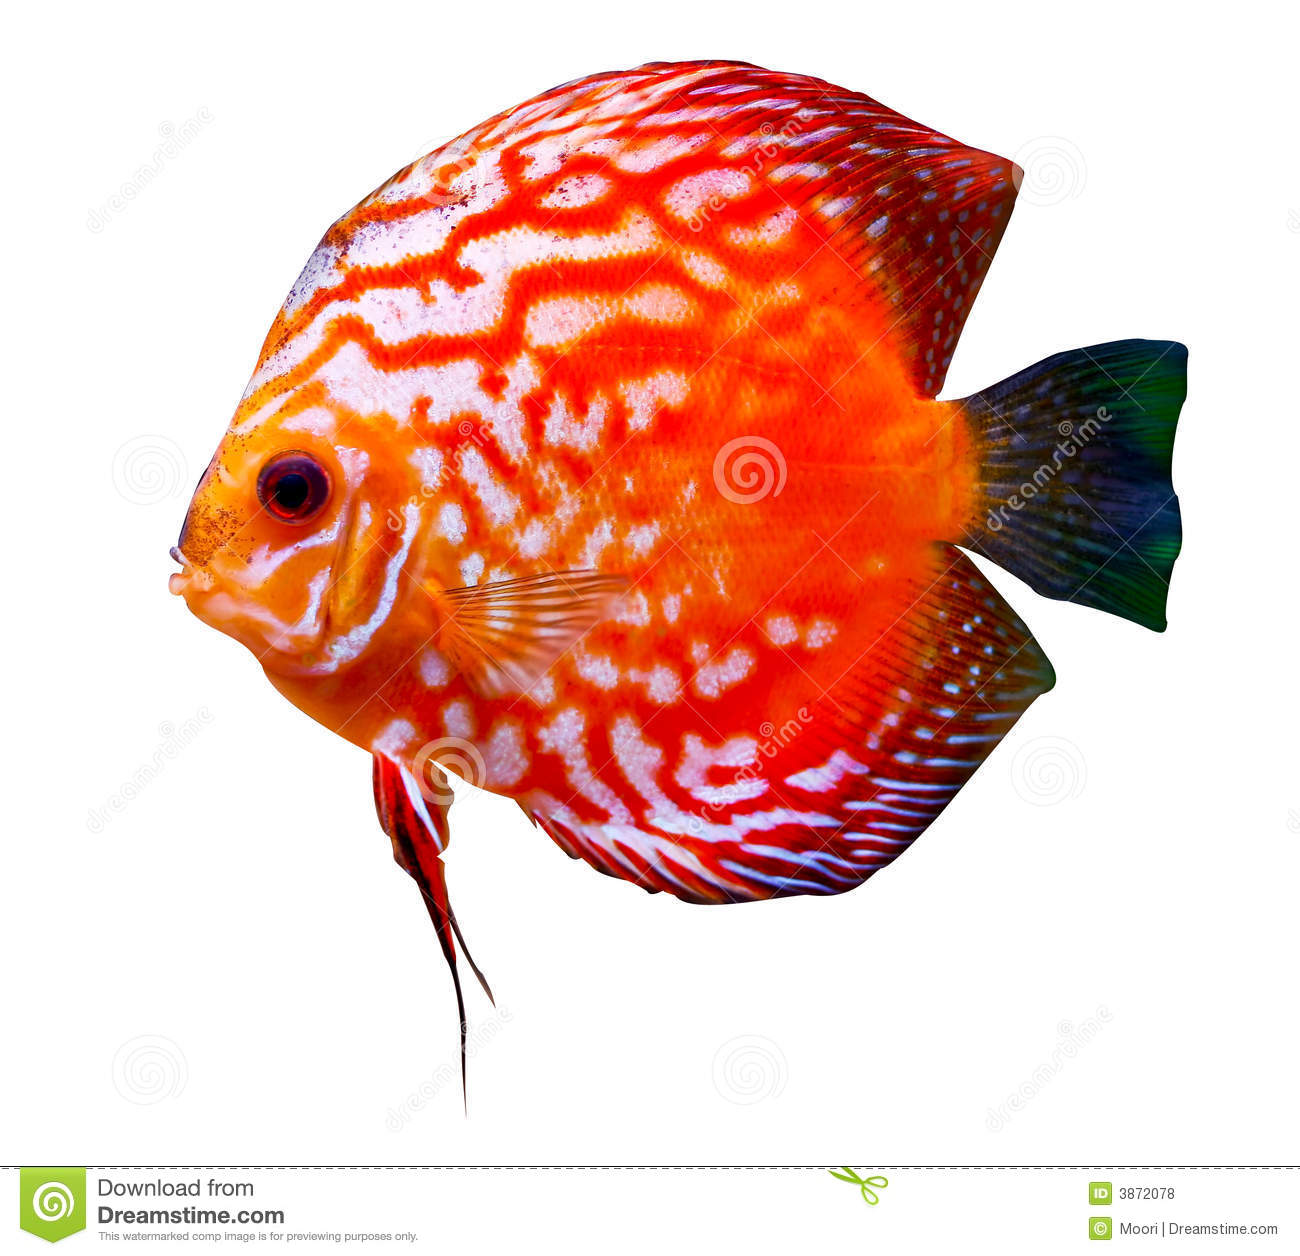 Discus Fish clipart #15, Download drawings